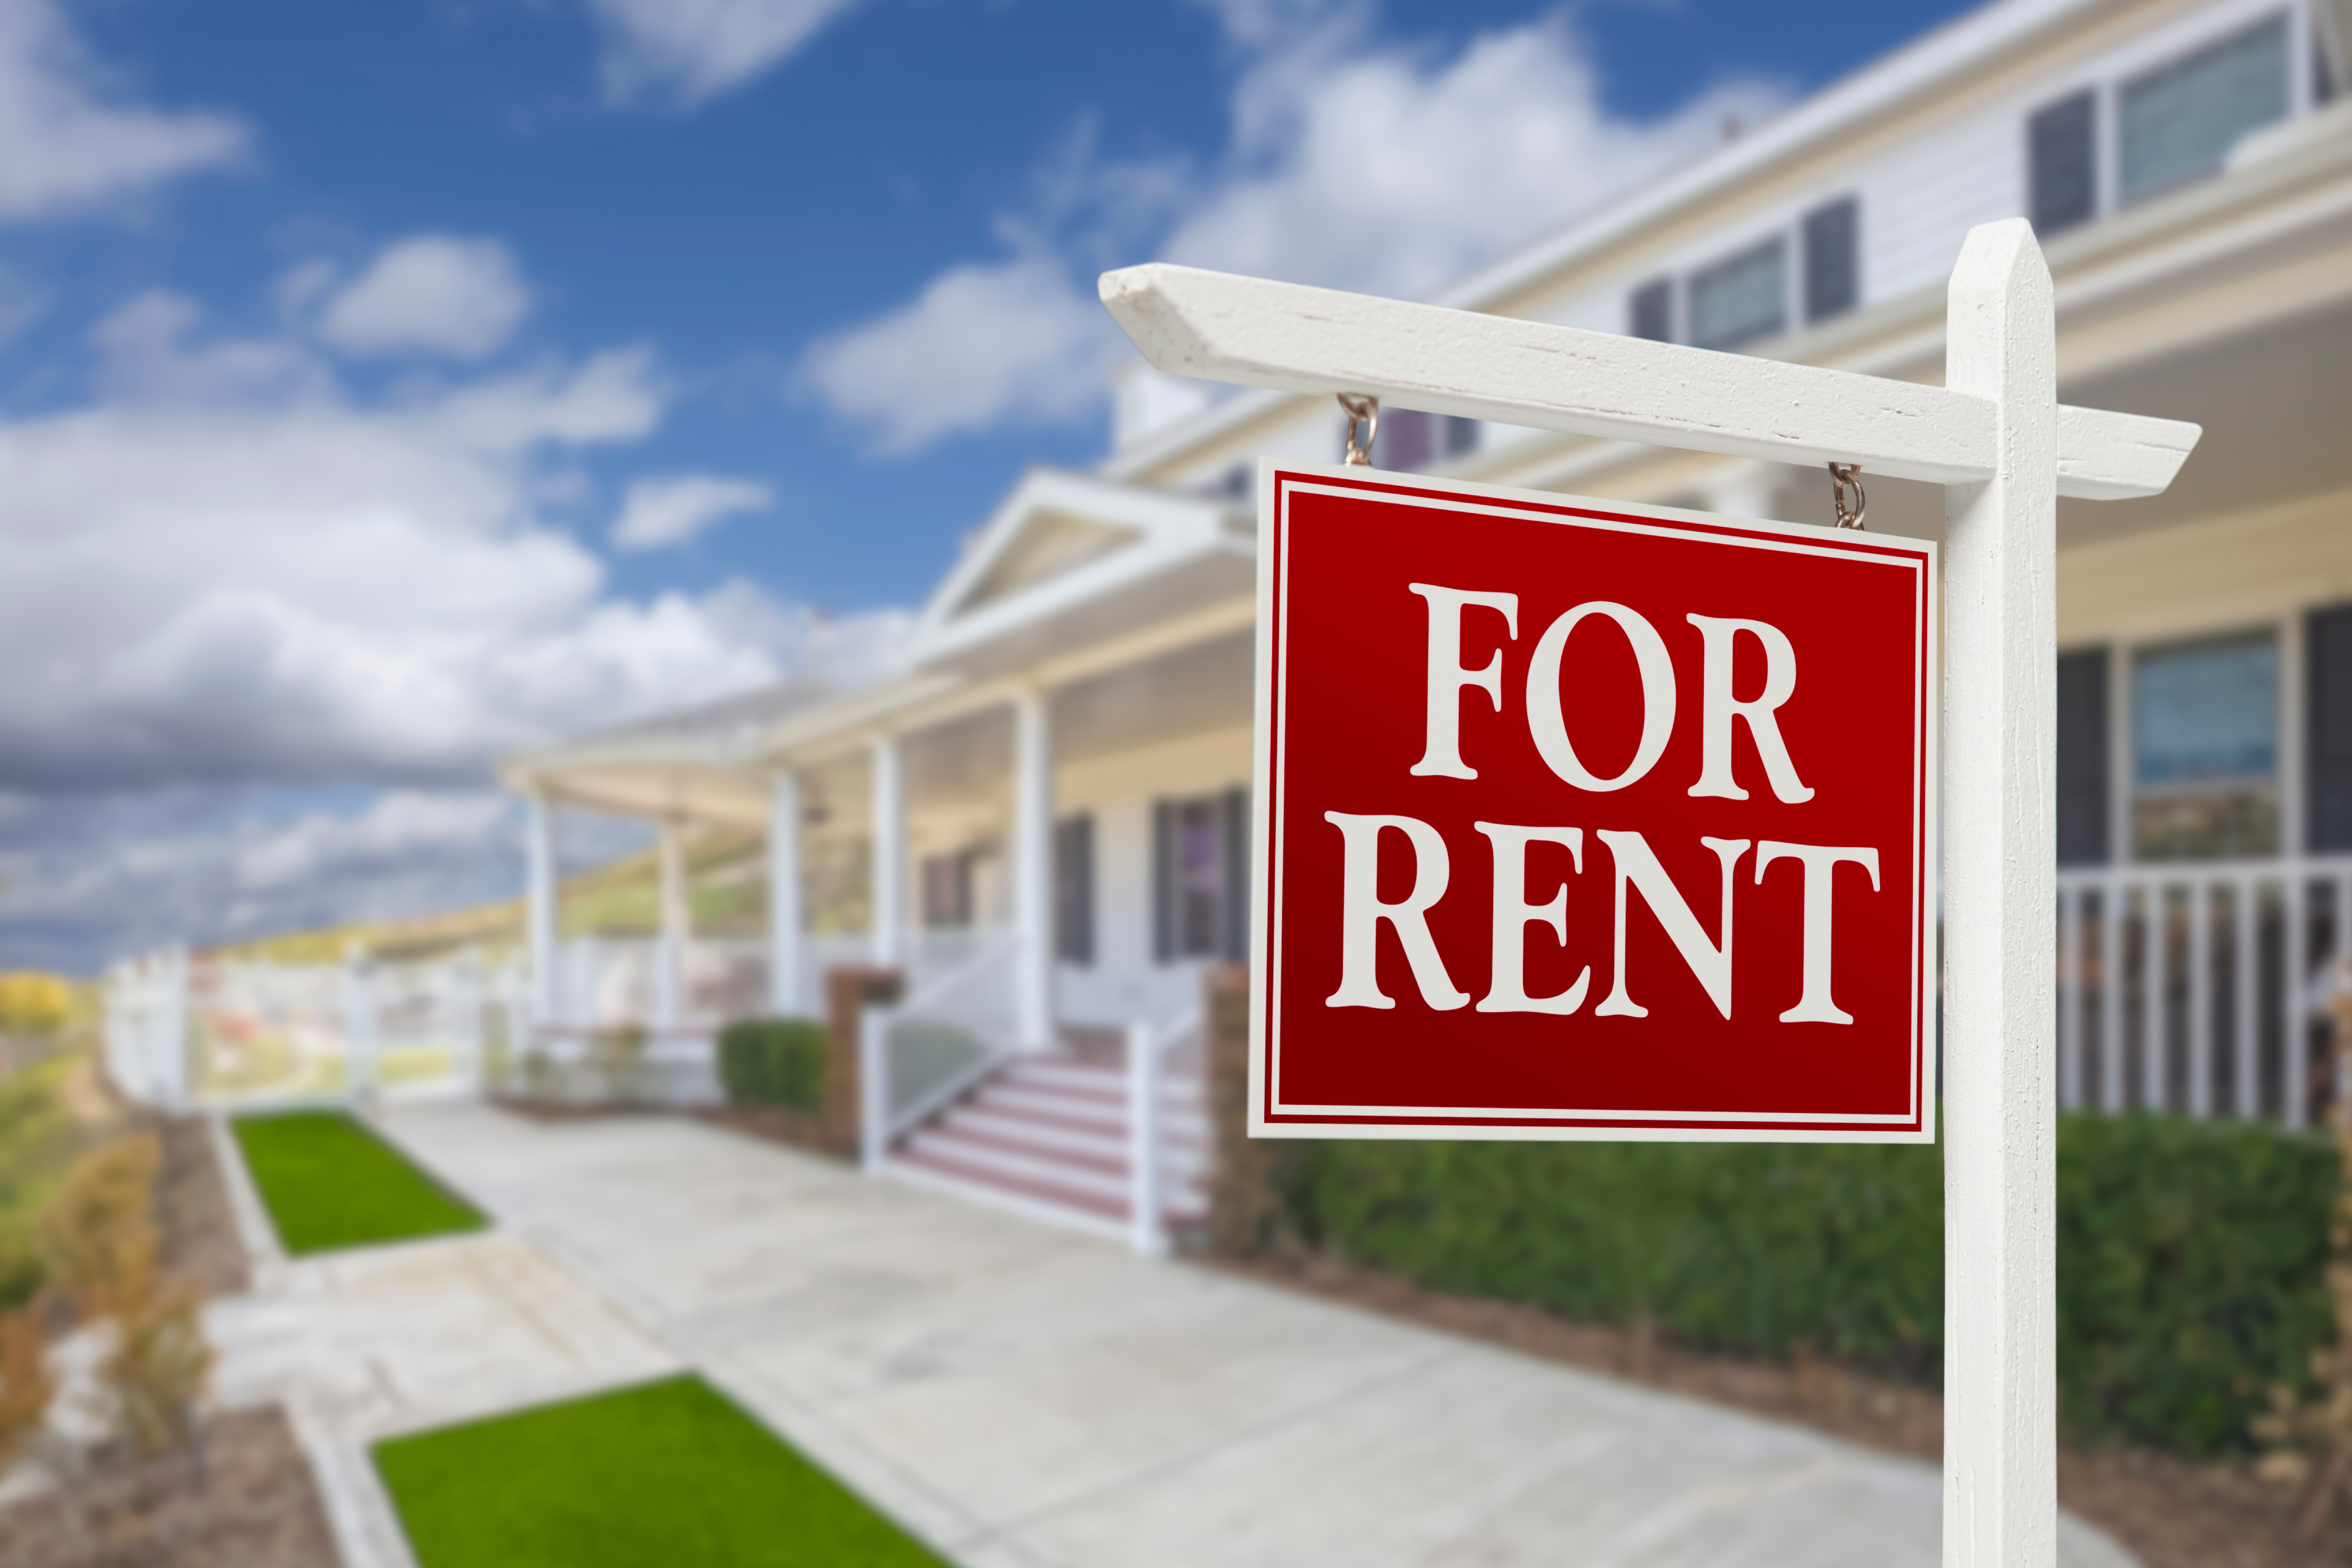 Rents likely to rise with Government's ill-considered property management changes